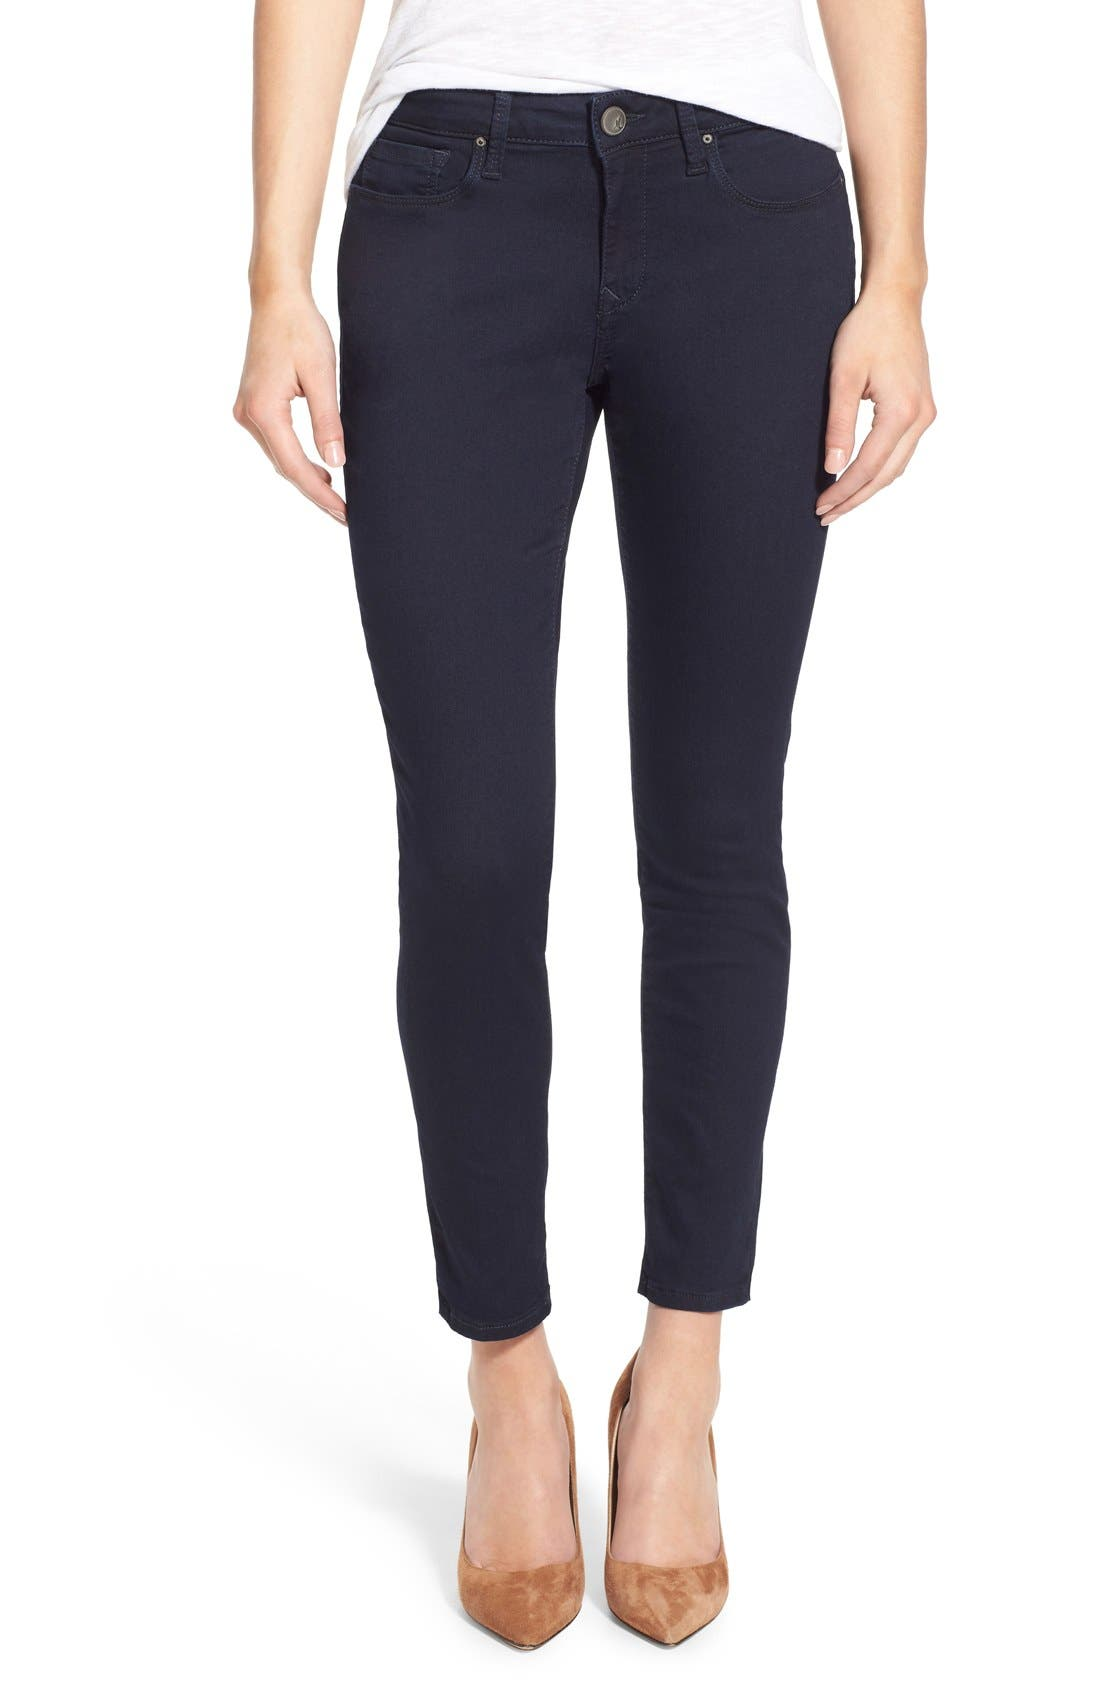 Alternate Image 1 Selected - Mavi Jeans 'Alexa' Stretch Skinny Jeans (Dark Shanti) (Petite)